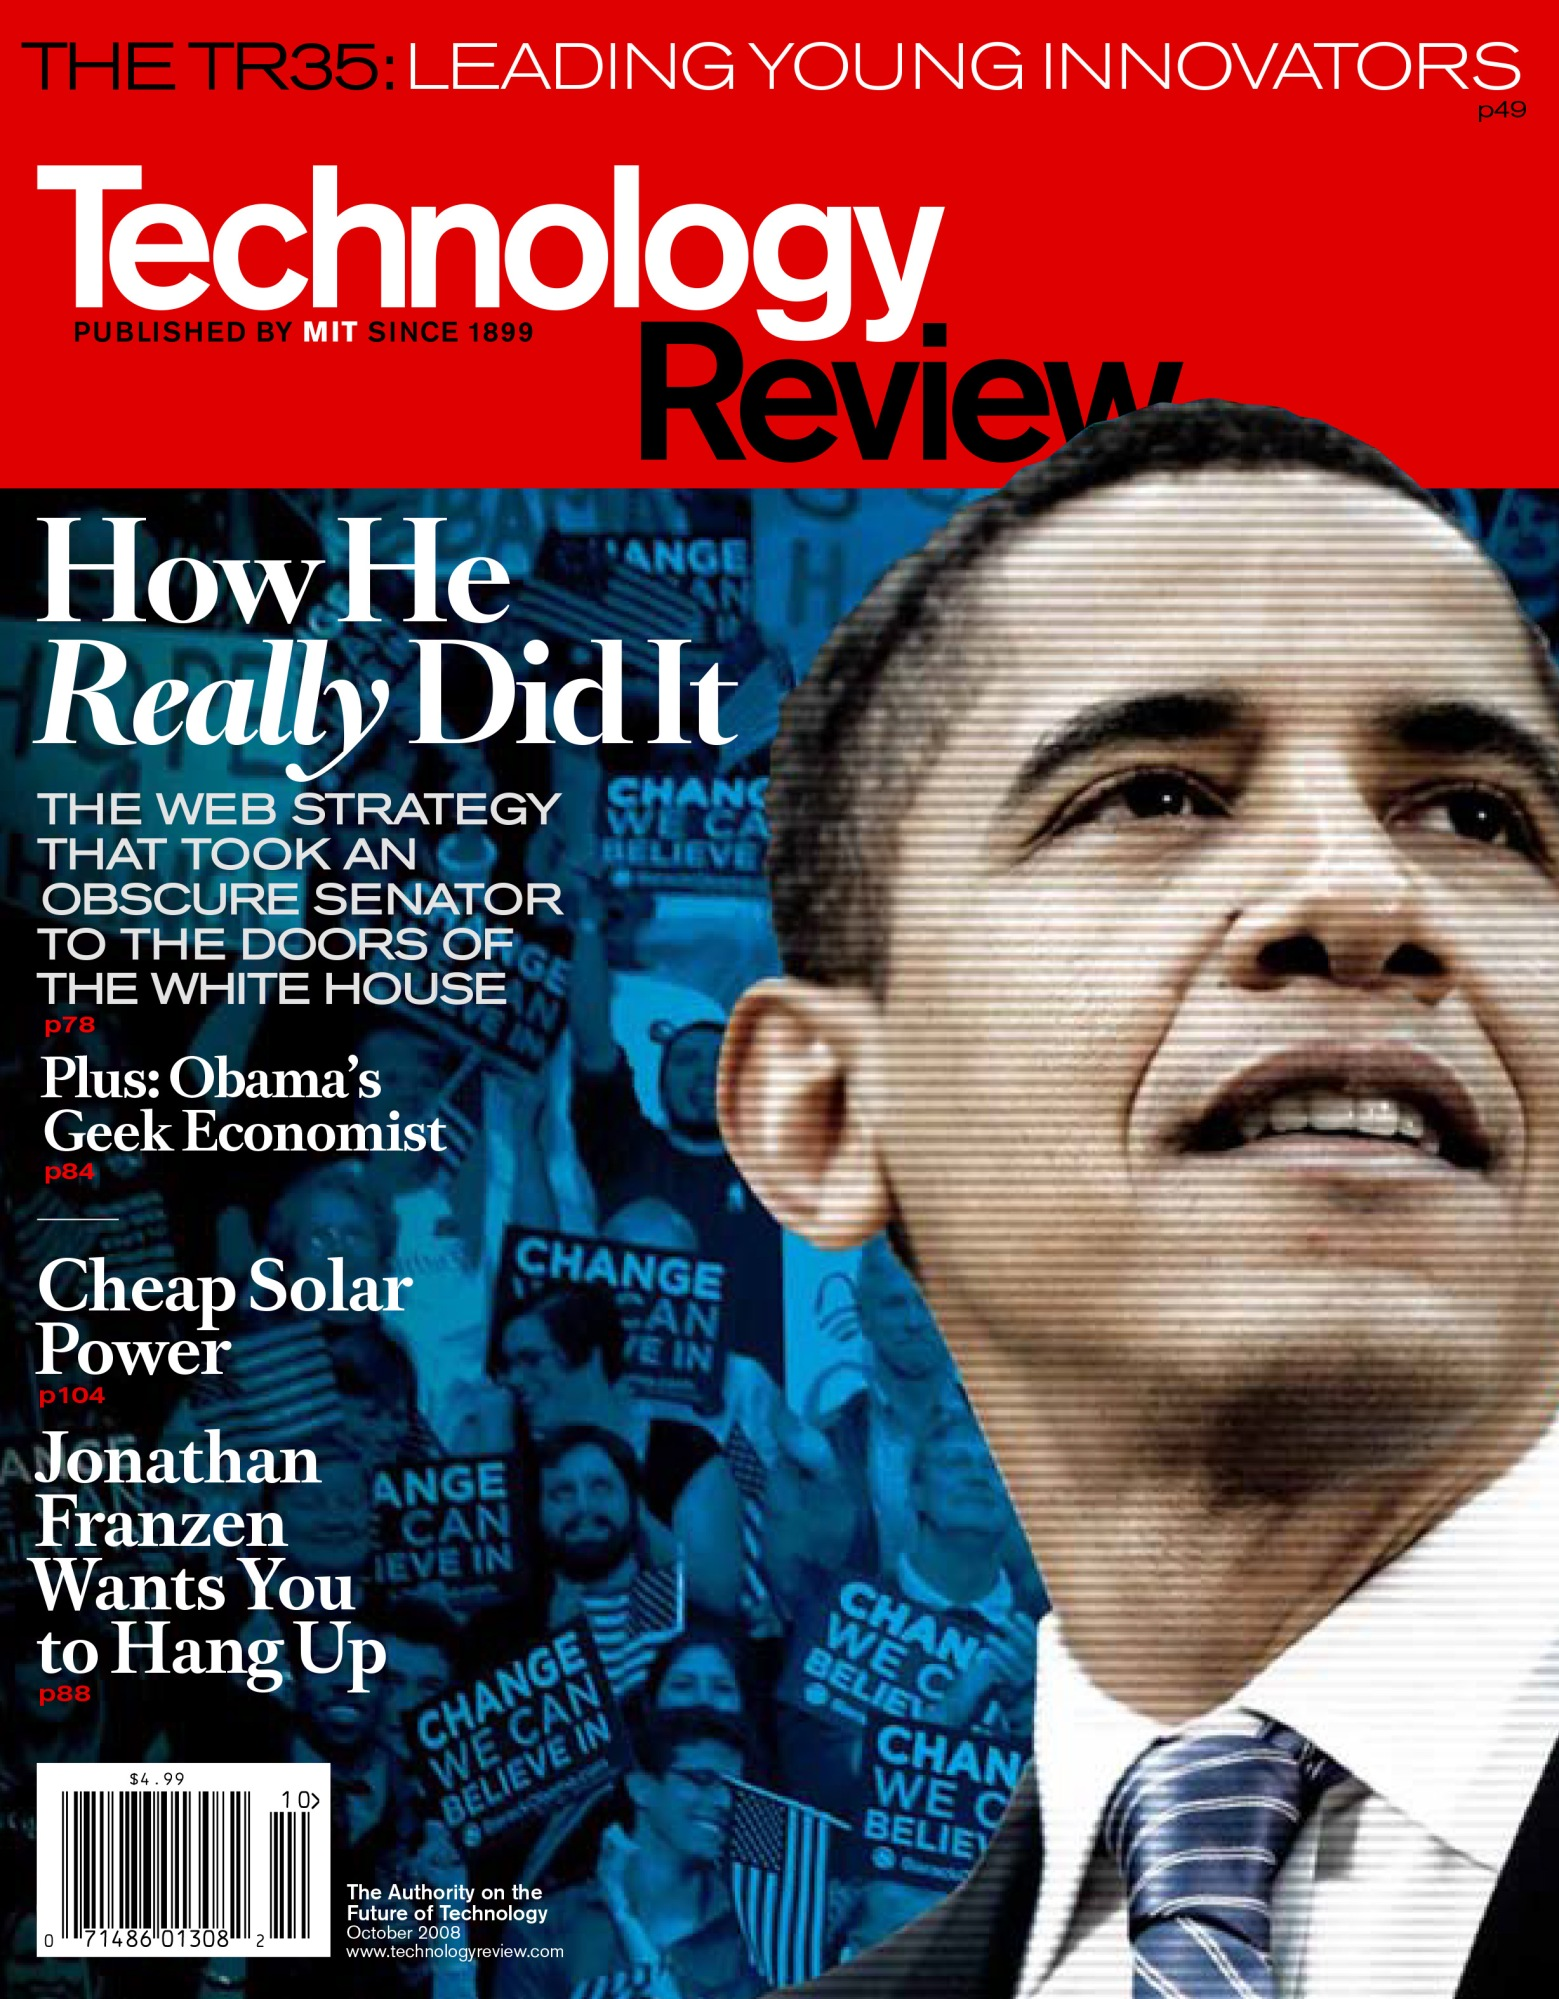 2009 cover